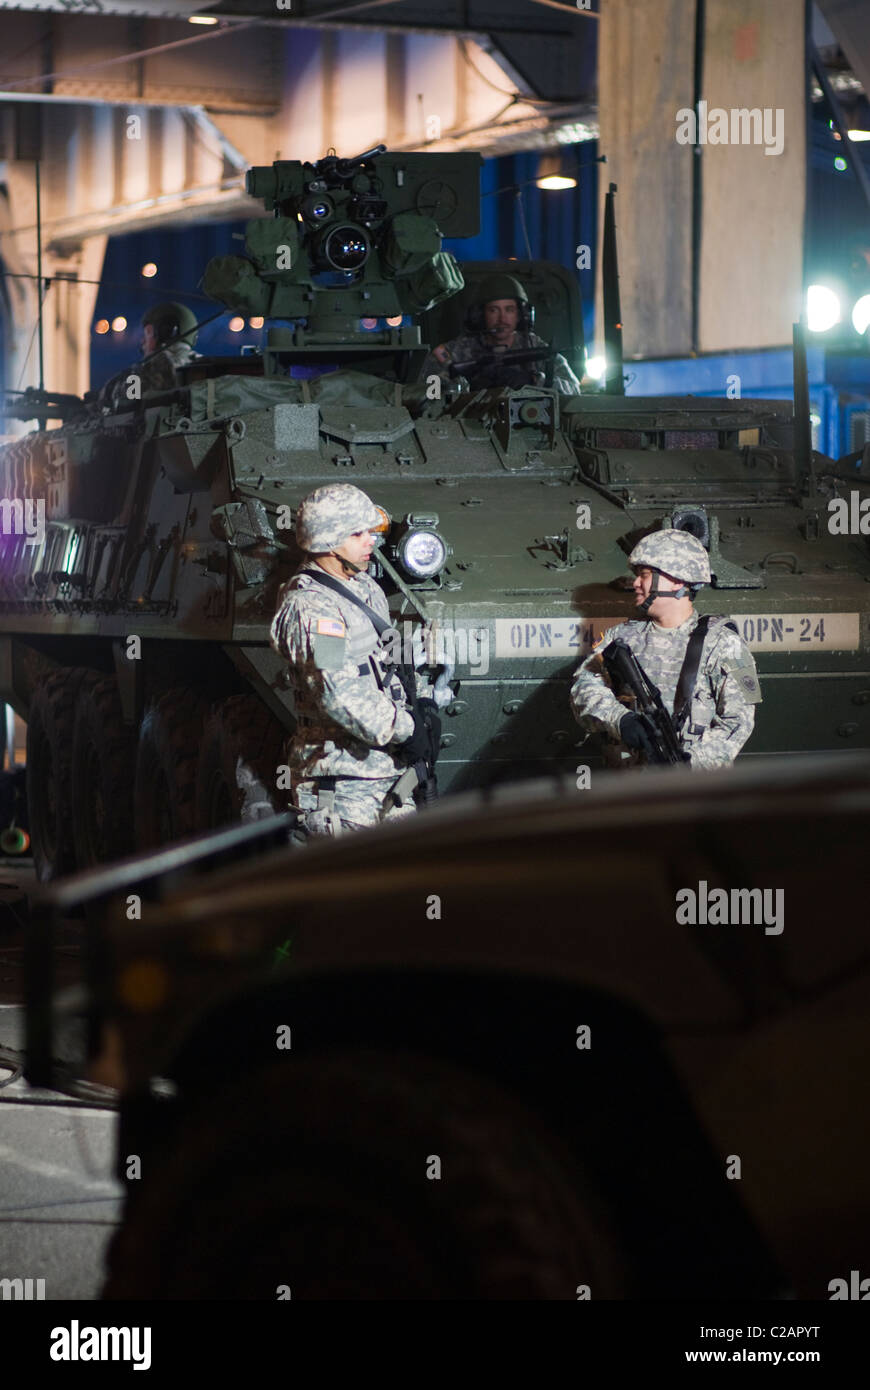 LAV Stryker armored fighting vehicle & Army National Guard soldiers near FDR Drive in Manhattan. © Craig - Stock Image